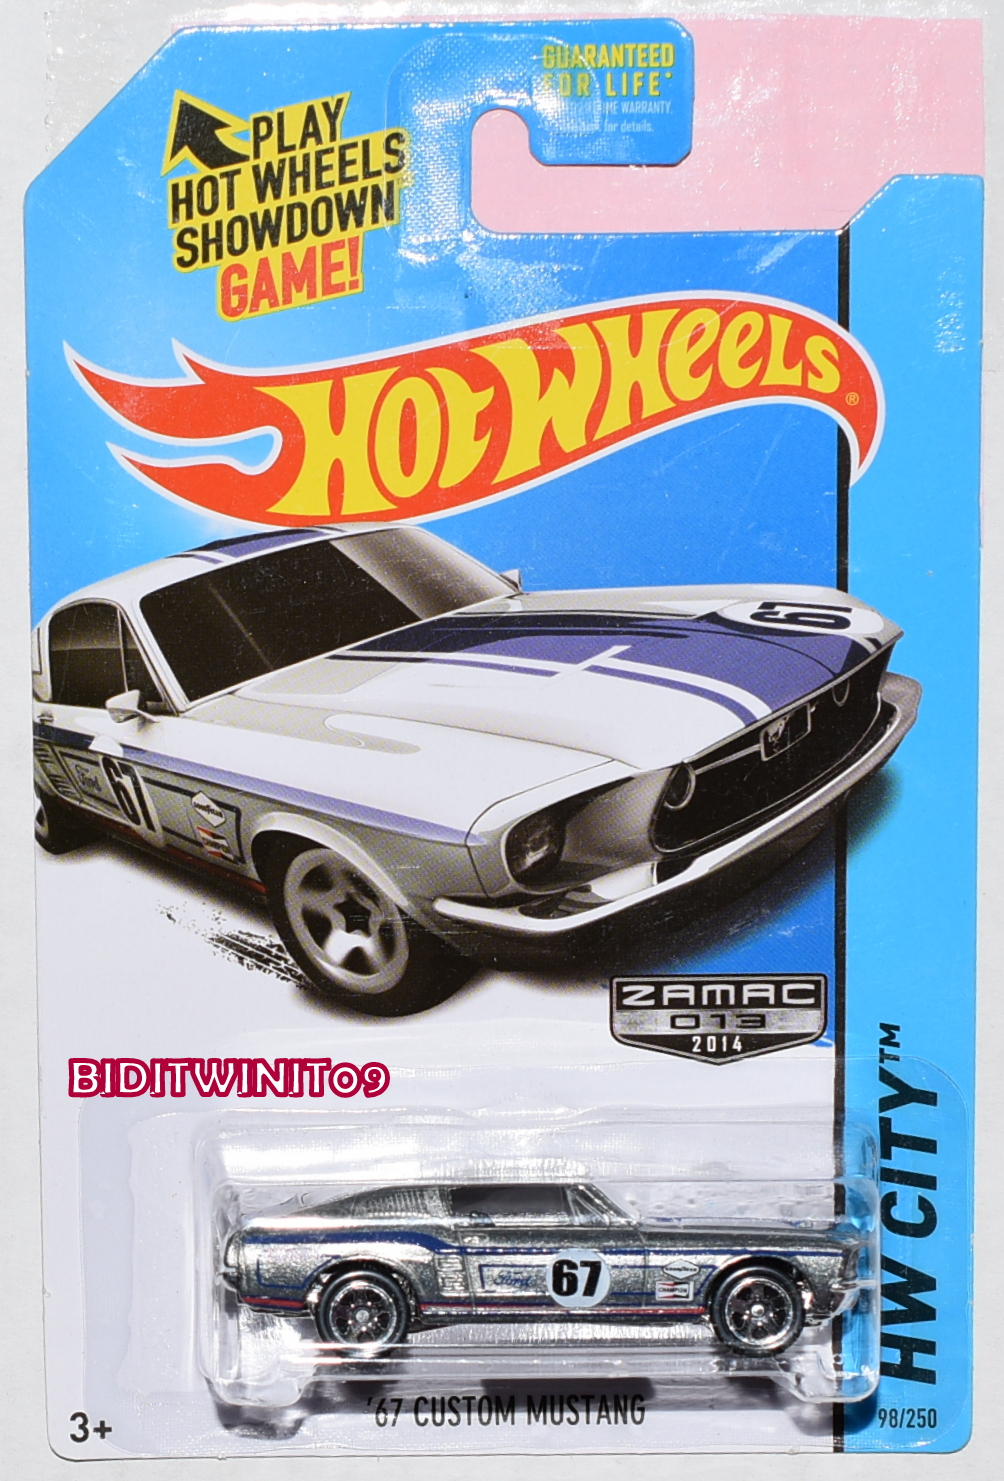 HOT WHEELS 2014 HW CITY '67 CUSTOM MUSTANG ZAMAC